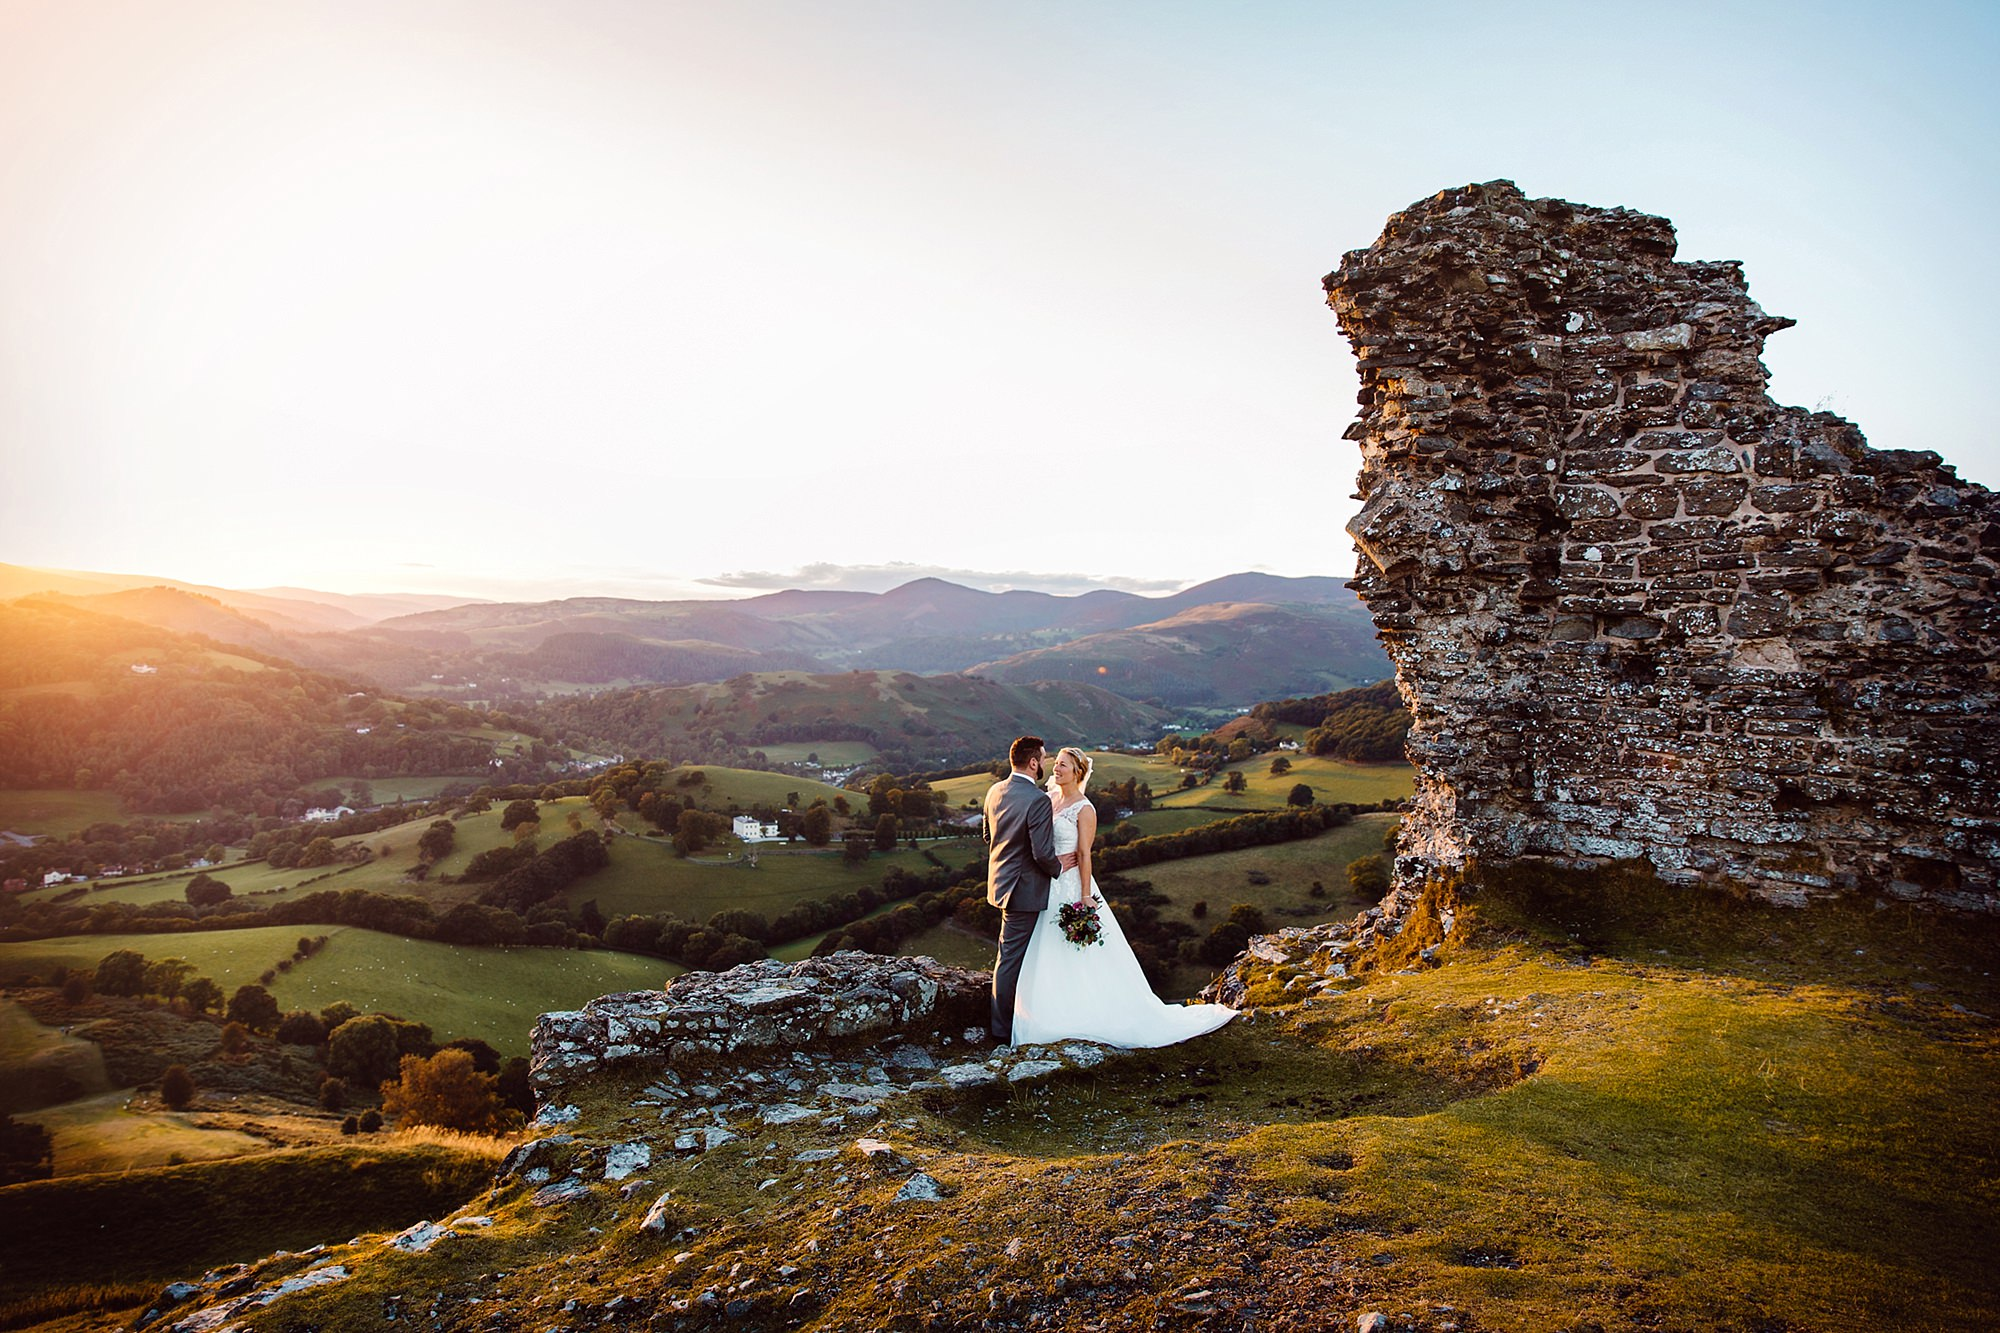 Castell dinas bran wedding photography a bride and groom stand together at castle ruins at sunset